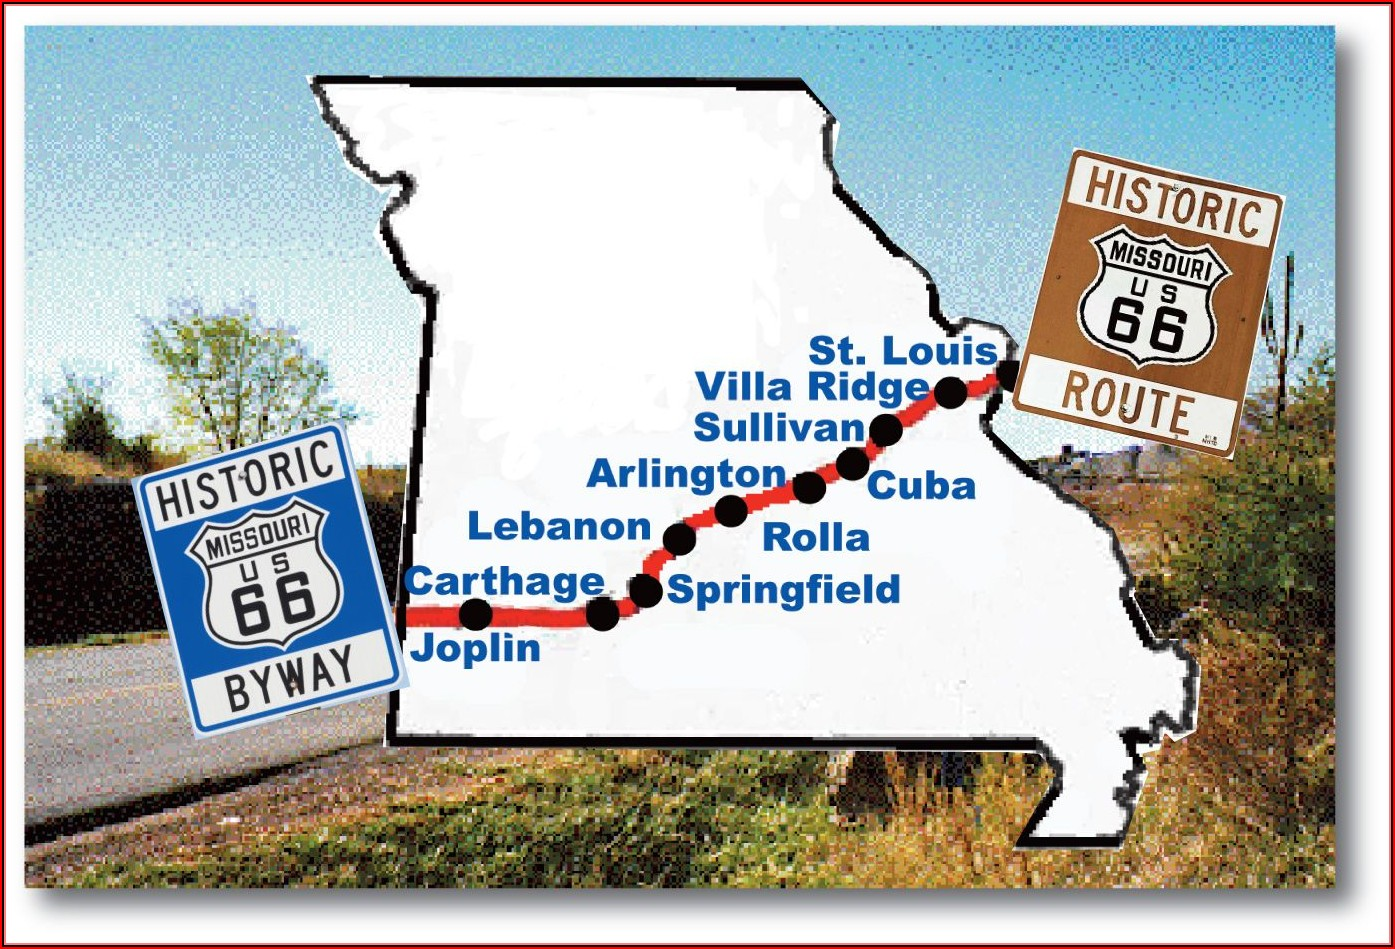 Map Of Old Route 66 In Missouri